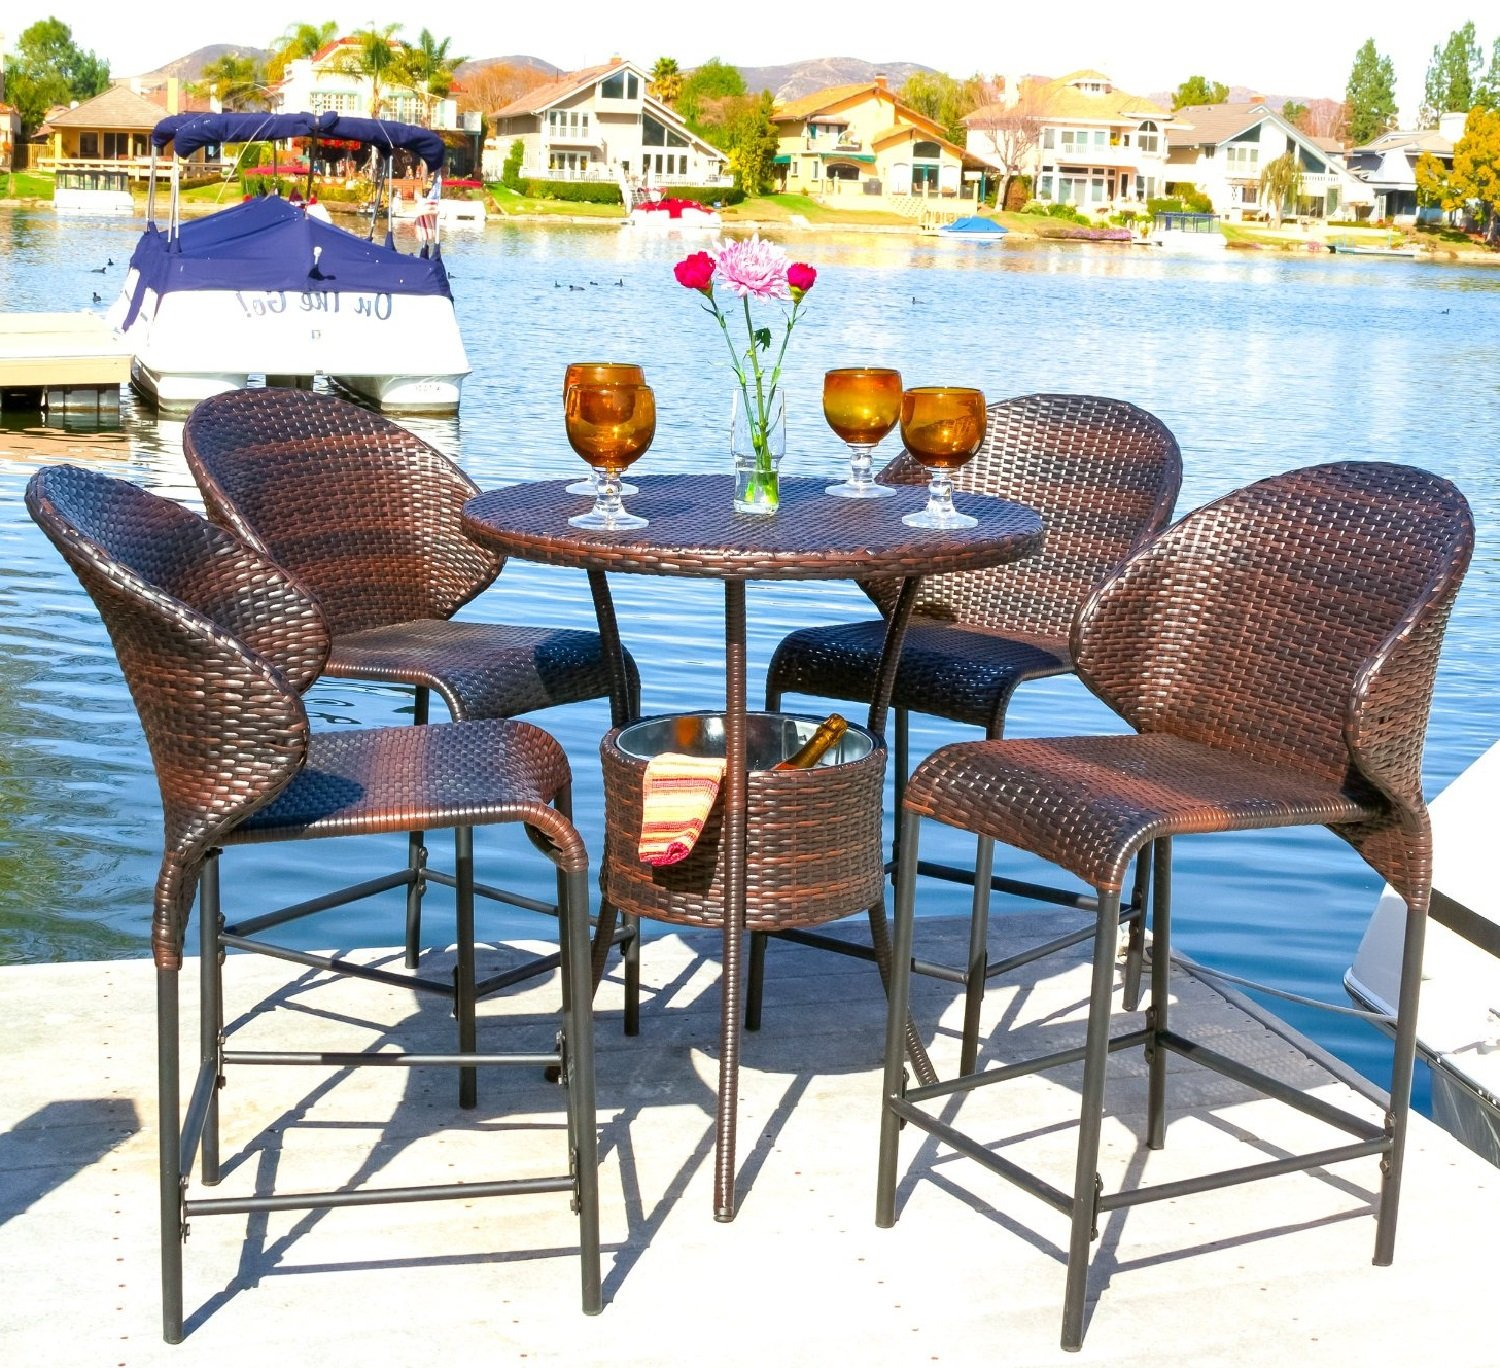 amazoncom bennett outdoor 5pc bistro bar set w ice pail kitchen u0026 dining